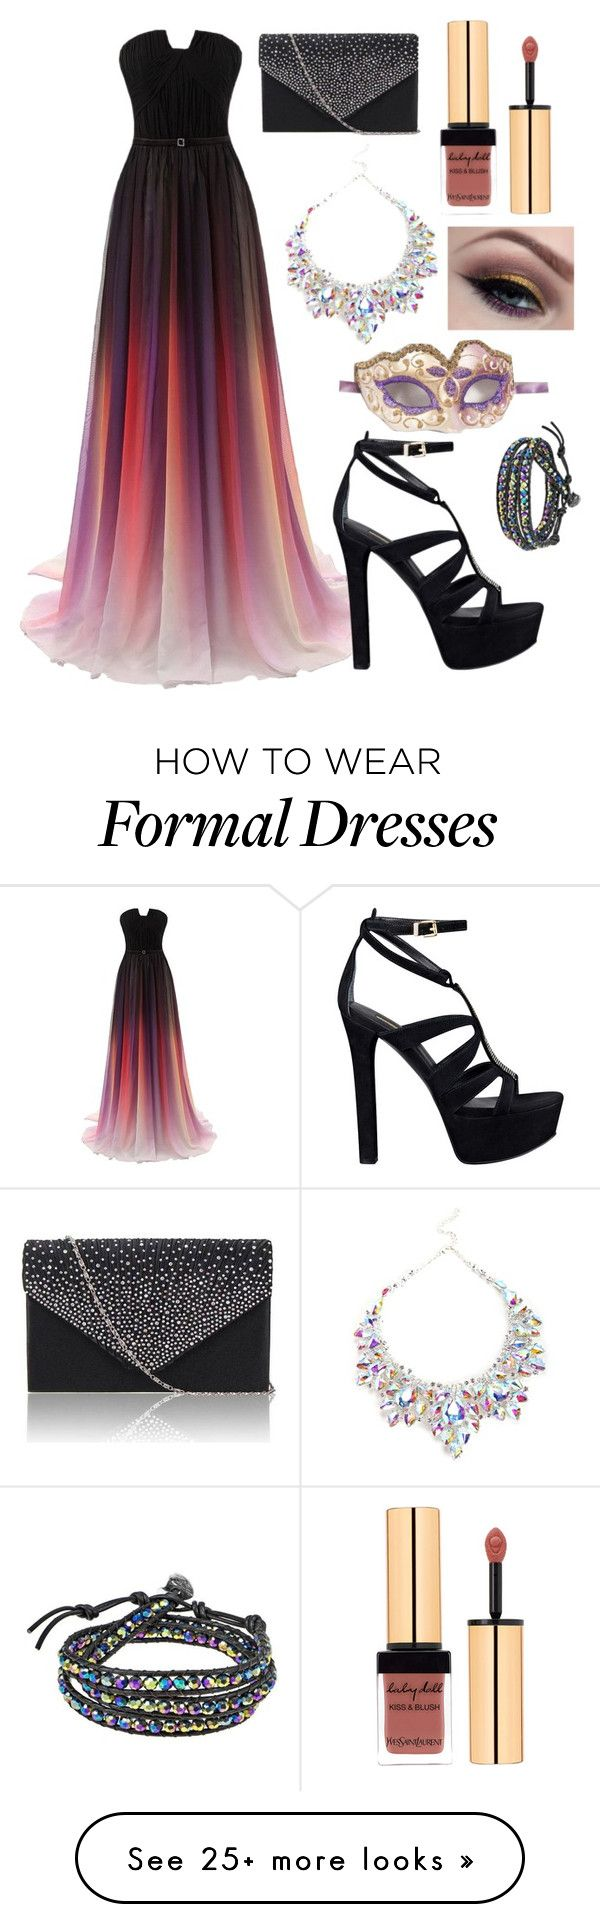 masquerade ball by winternightfrostbite on Polyvore featuring GUESS, AeraVida, Masquerade, women's clothing, women, female, woman, misses and juniors